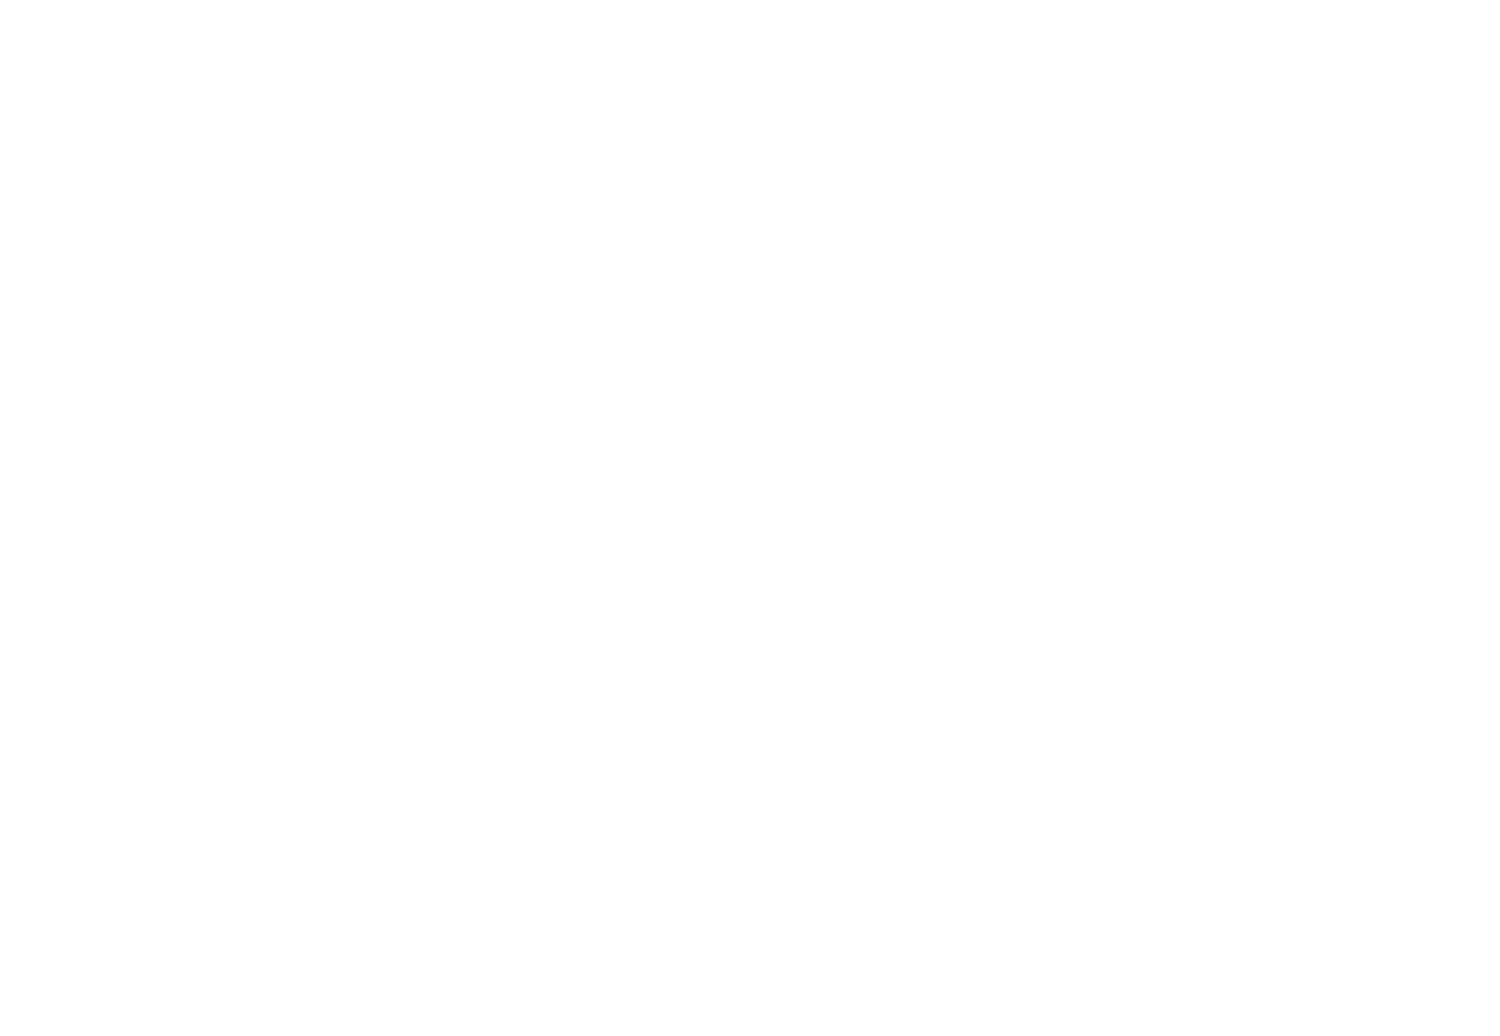 Miskatonic Shop